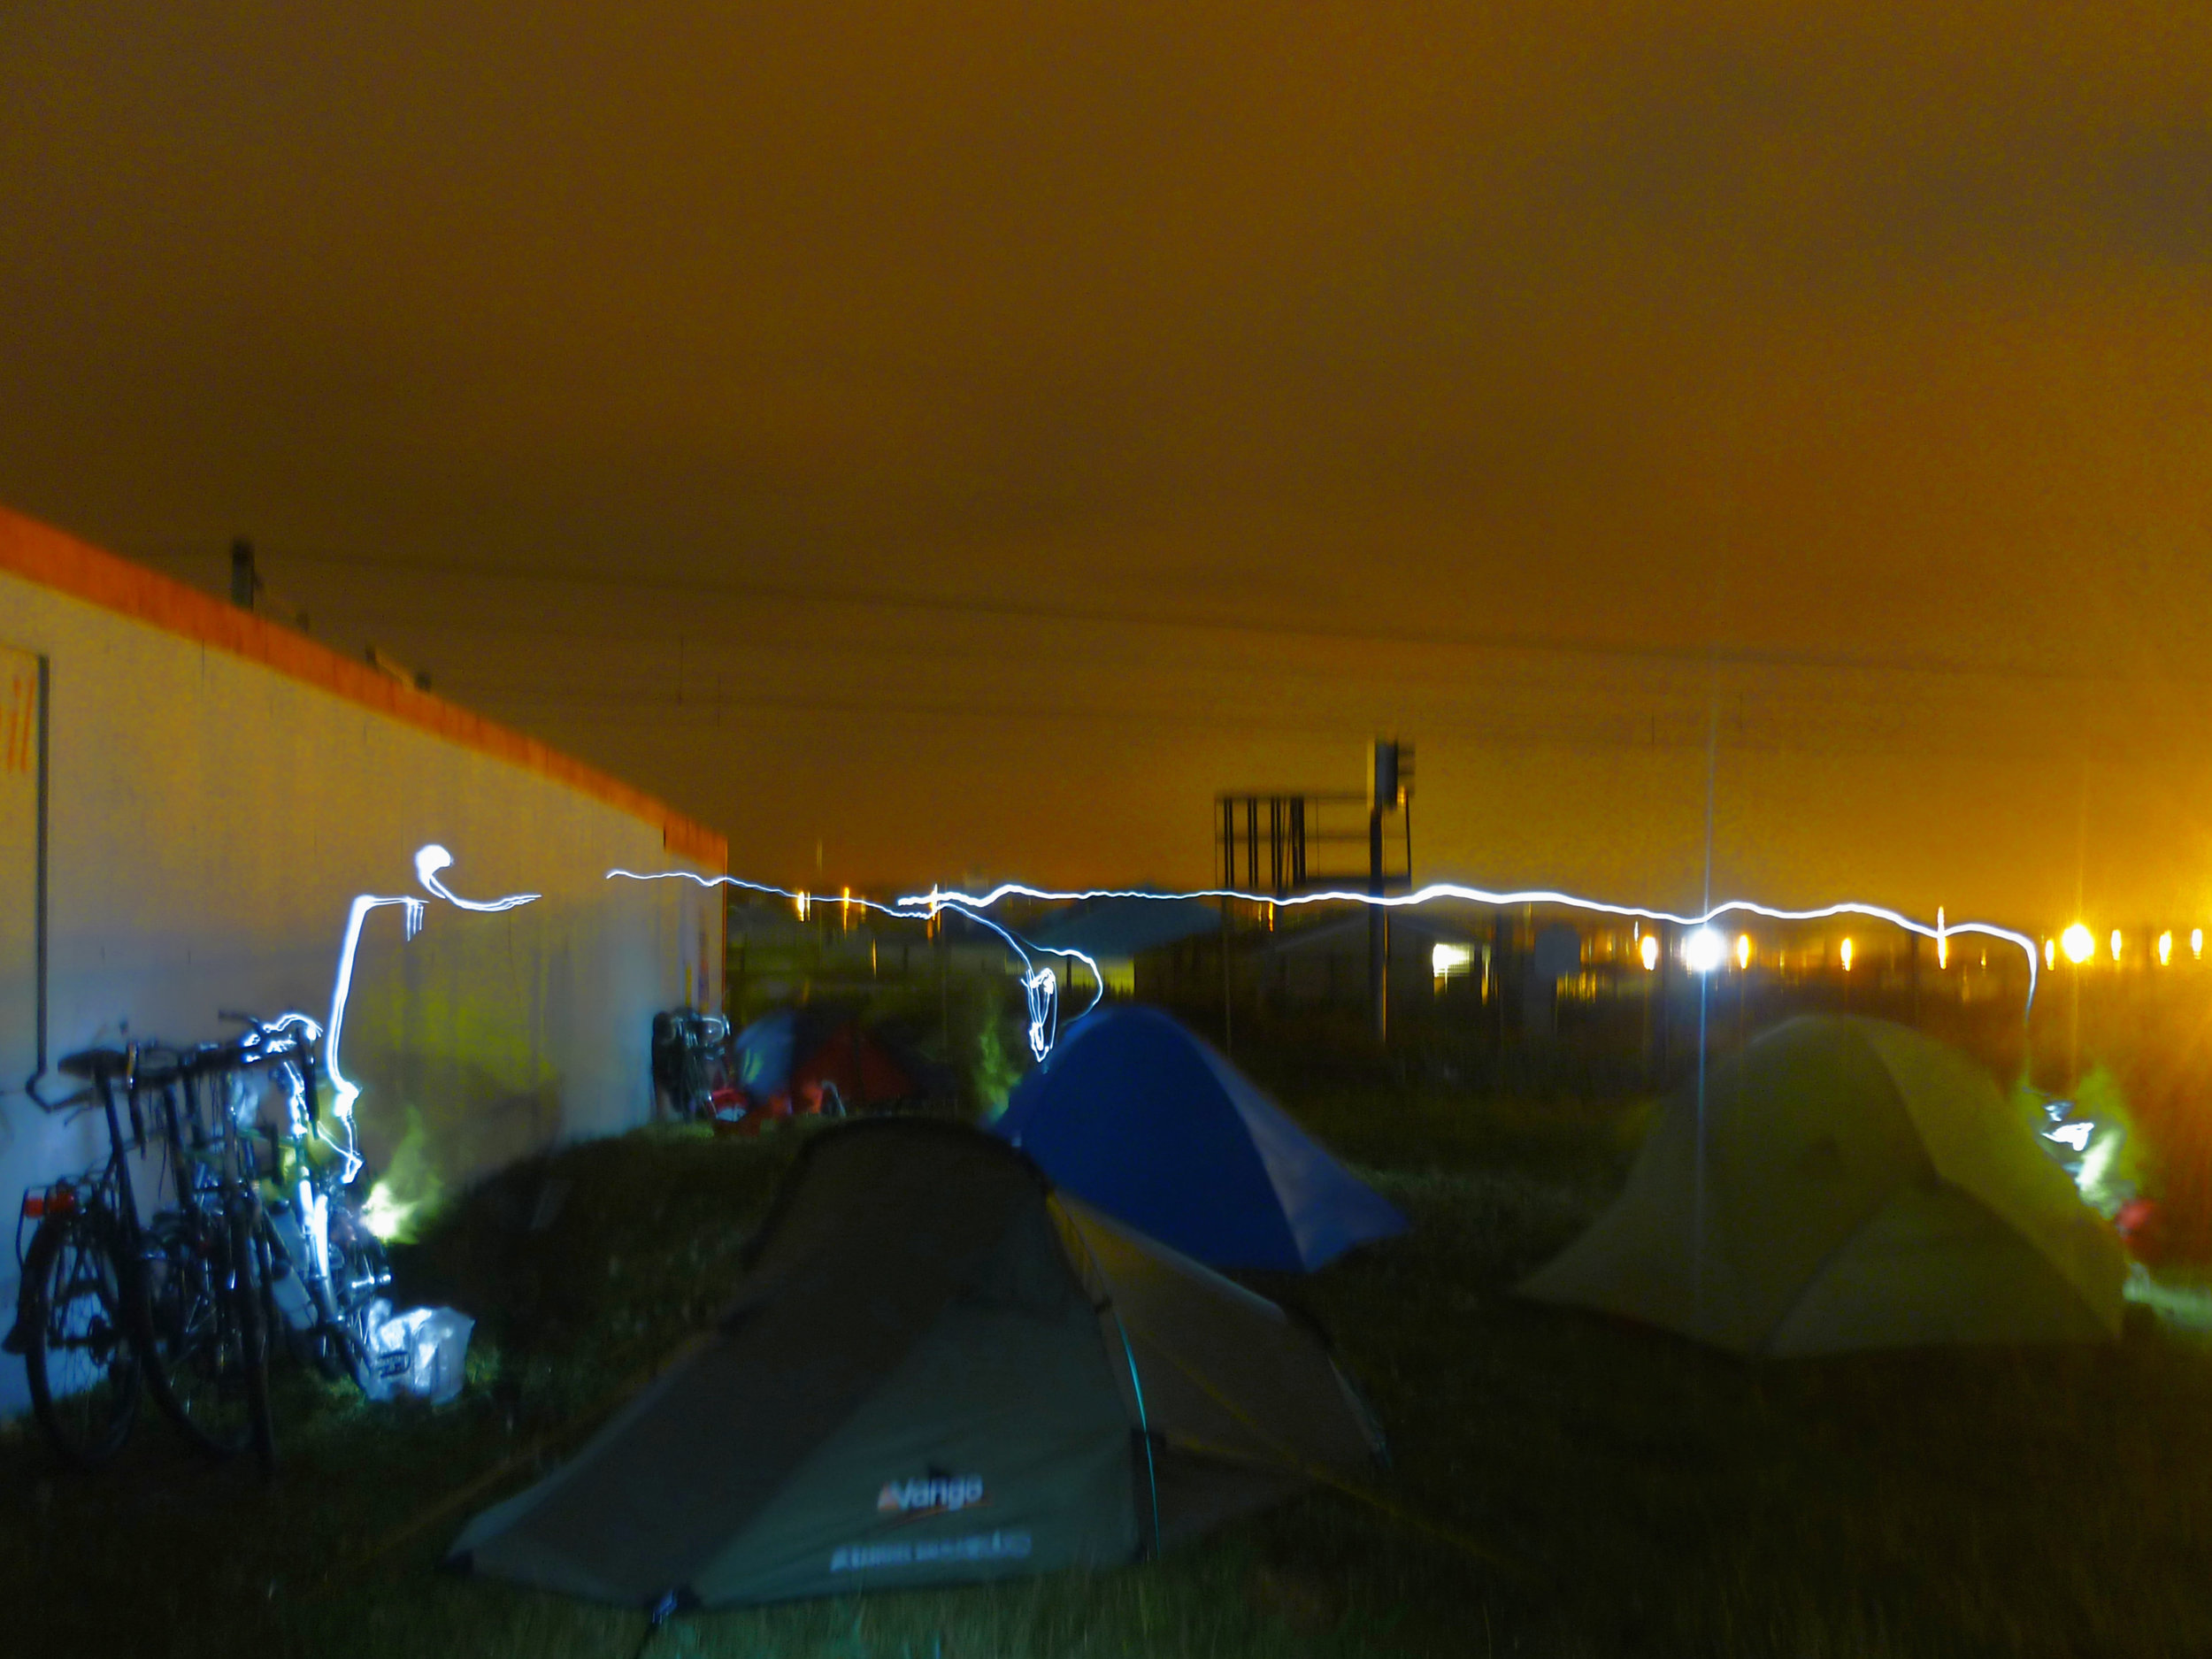 Not all wild camping spots are glamorous, but arriving late and leaving early can allow you to usually find somewhere to pitch your tent - even if that is next to a building site on the outskirts of a city…